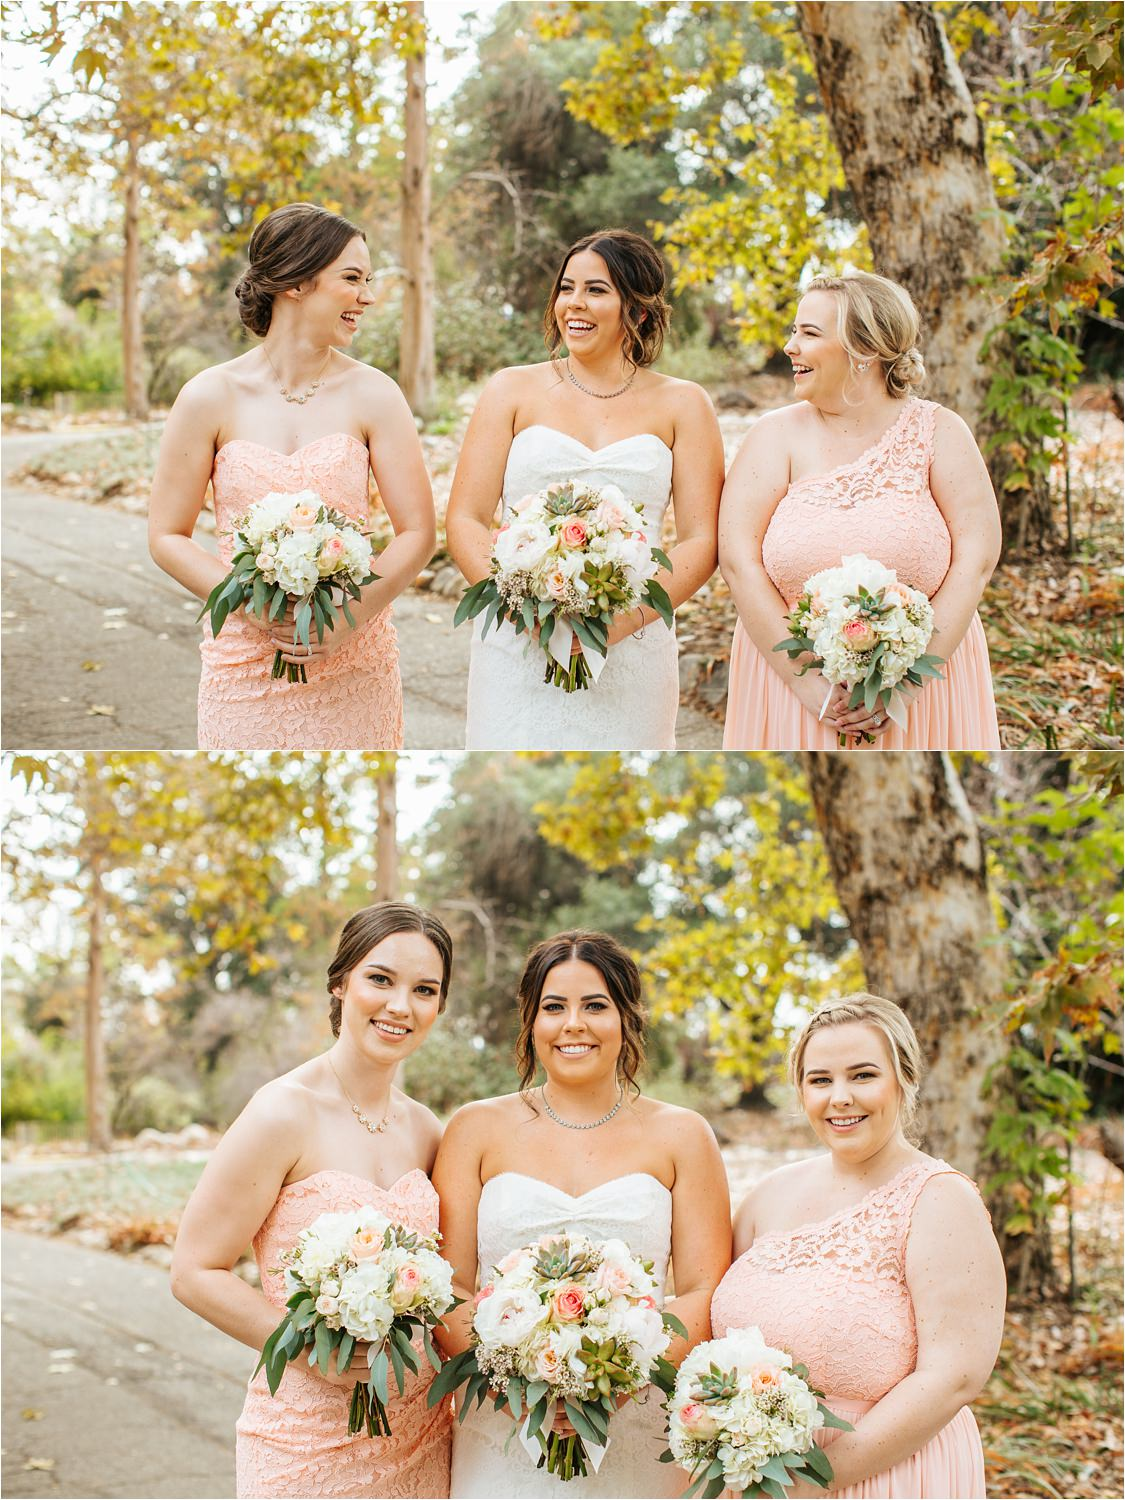 Bride and Bridesmaids - Fall Wedding - Southern California Fall Wedding - http://brittneyhannonphotography.com